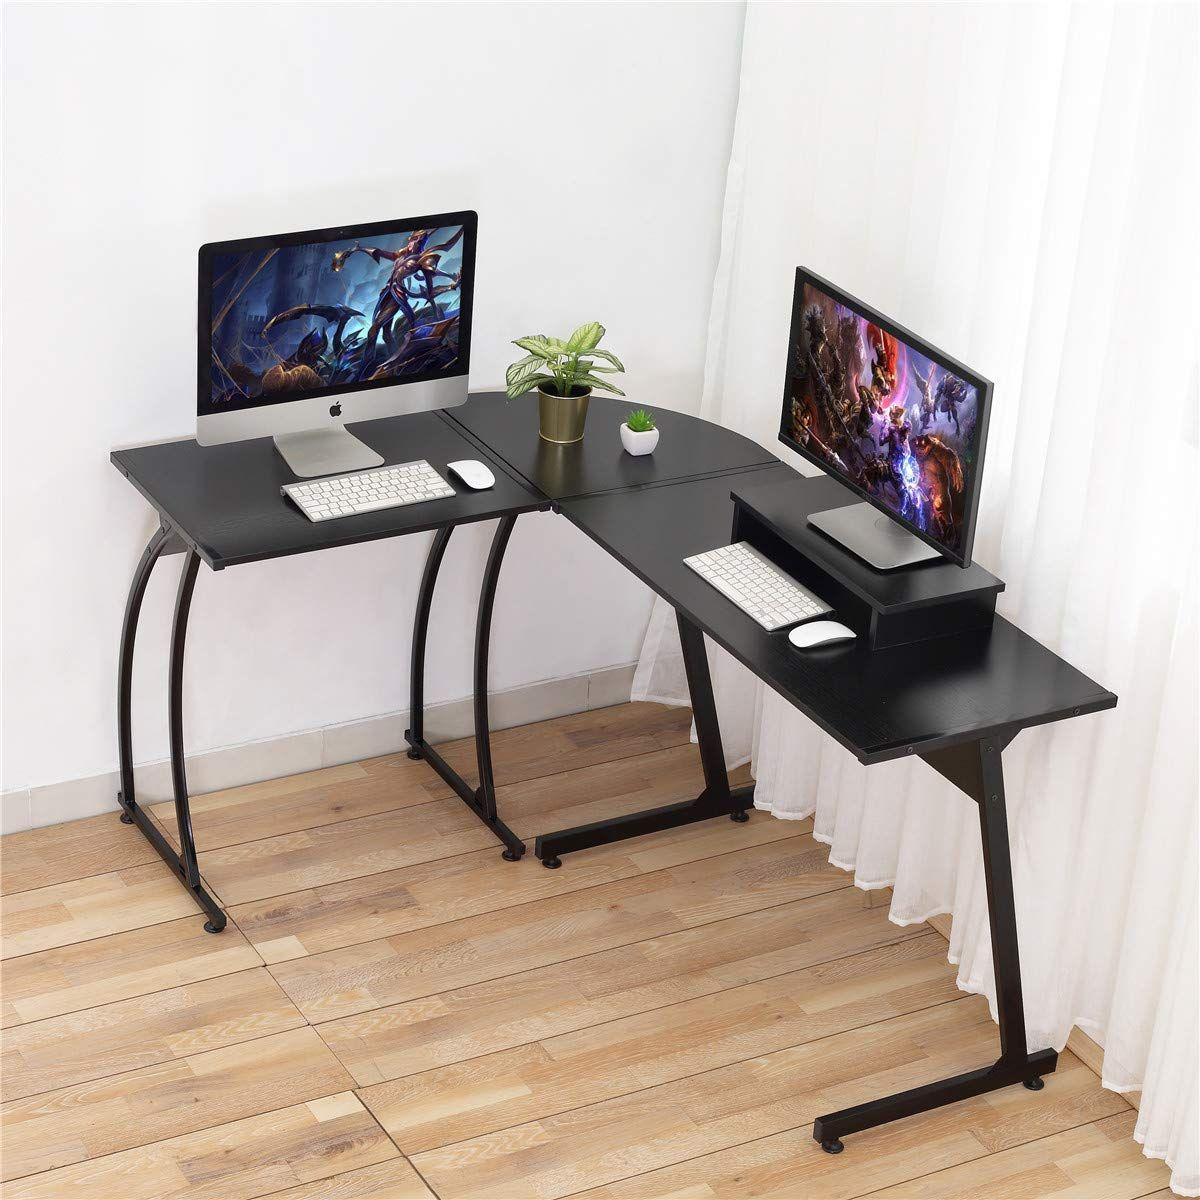 Computer Desk Dosleeps L Shaped Large Corner Pc Laptop Study Table Workstation Gaming Desk For Home And Office Free Monitor Stand Wood Metal Black Wood G In 2020 Computer